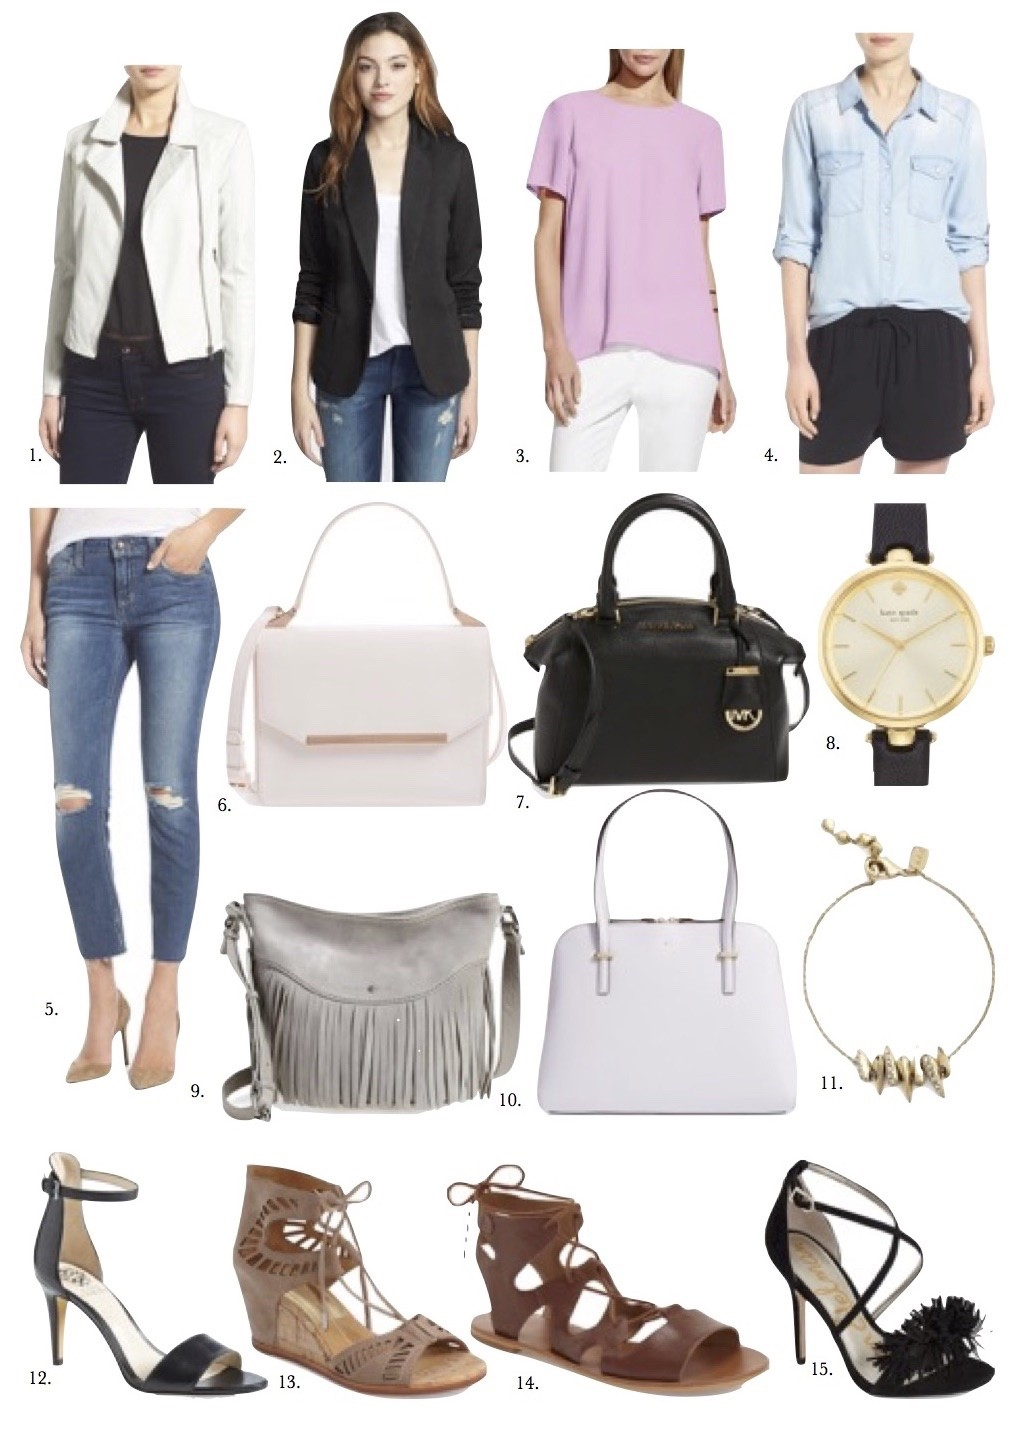 f21e05877e MY NORDSTROM HALF YEARLY SALE PICKS - Elle Apparel by Leanne Barlow